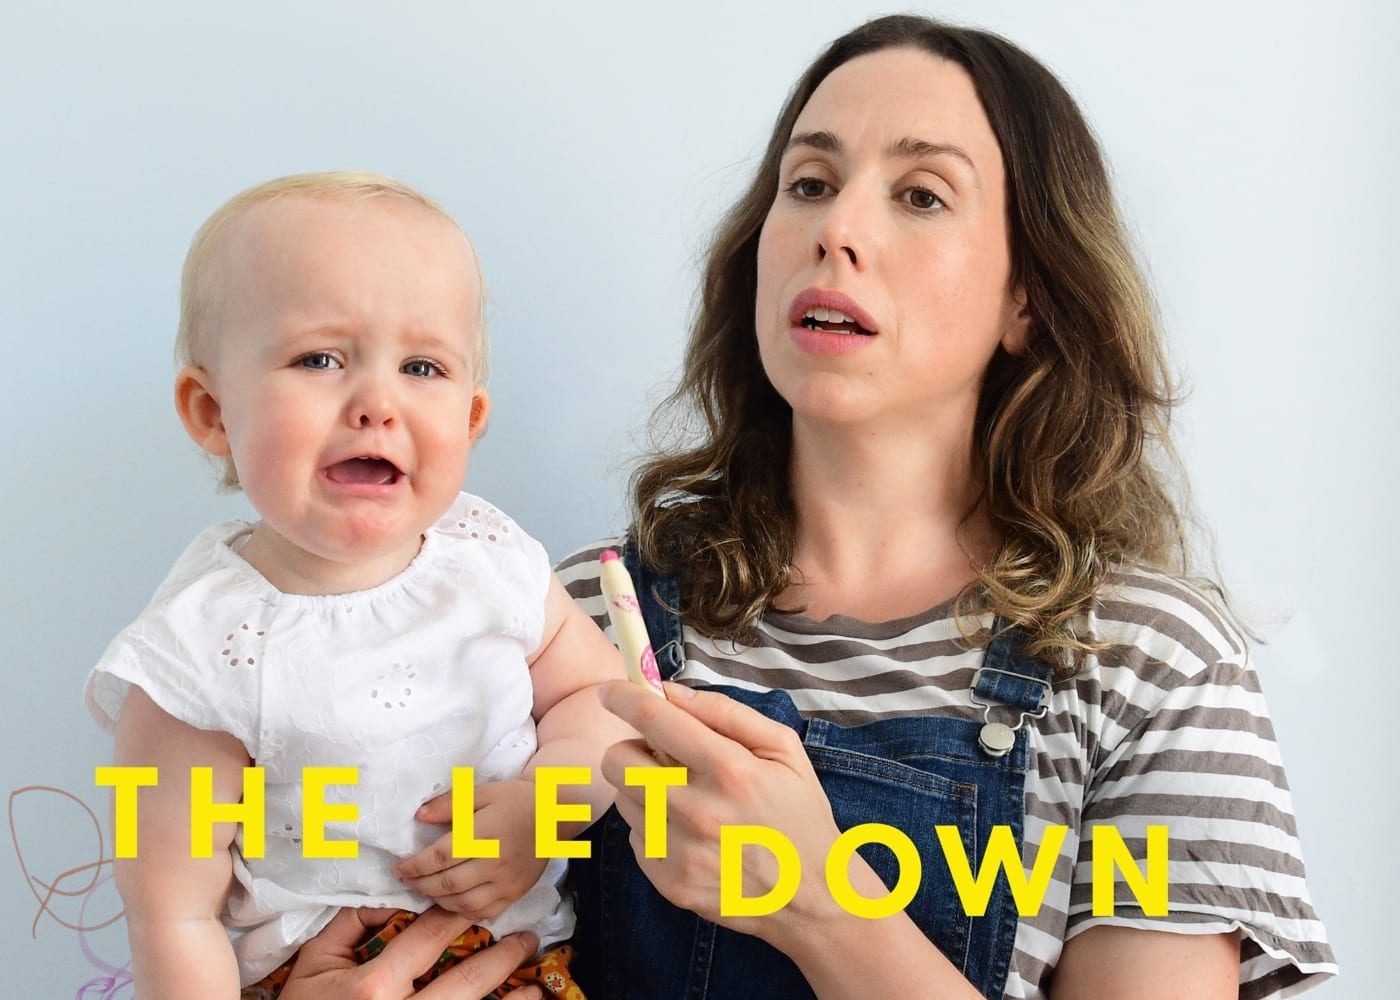 TV shows about parenting The Letdown